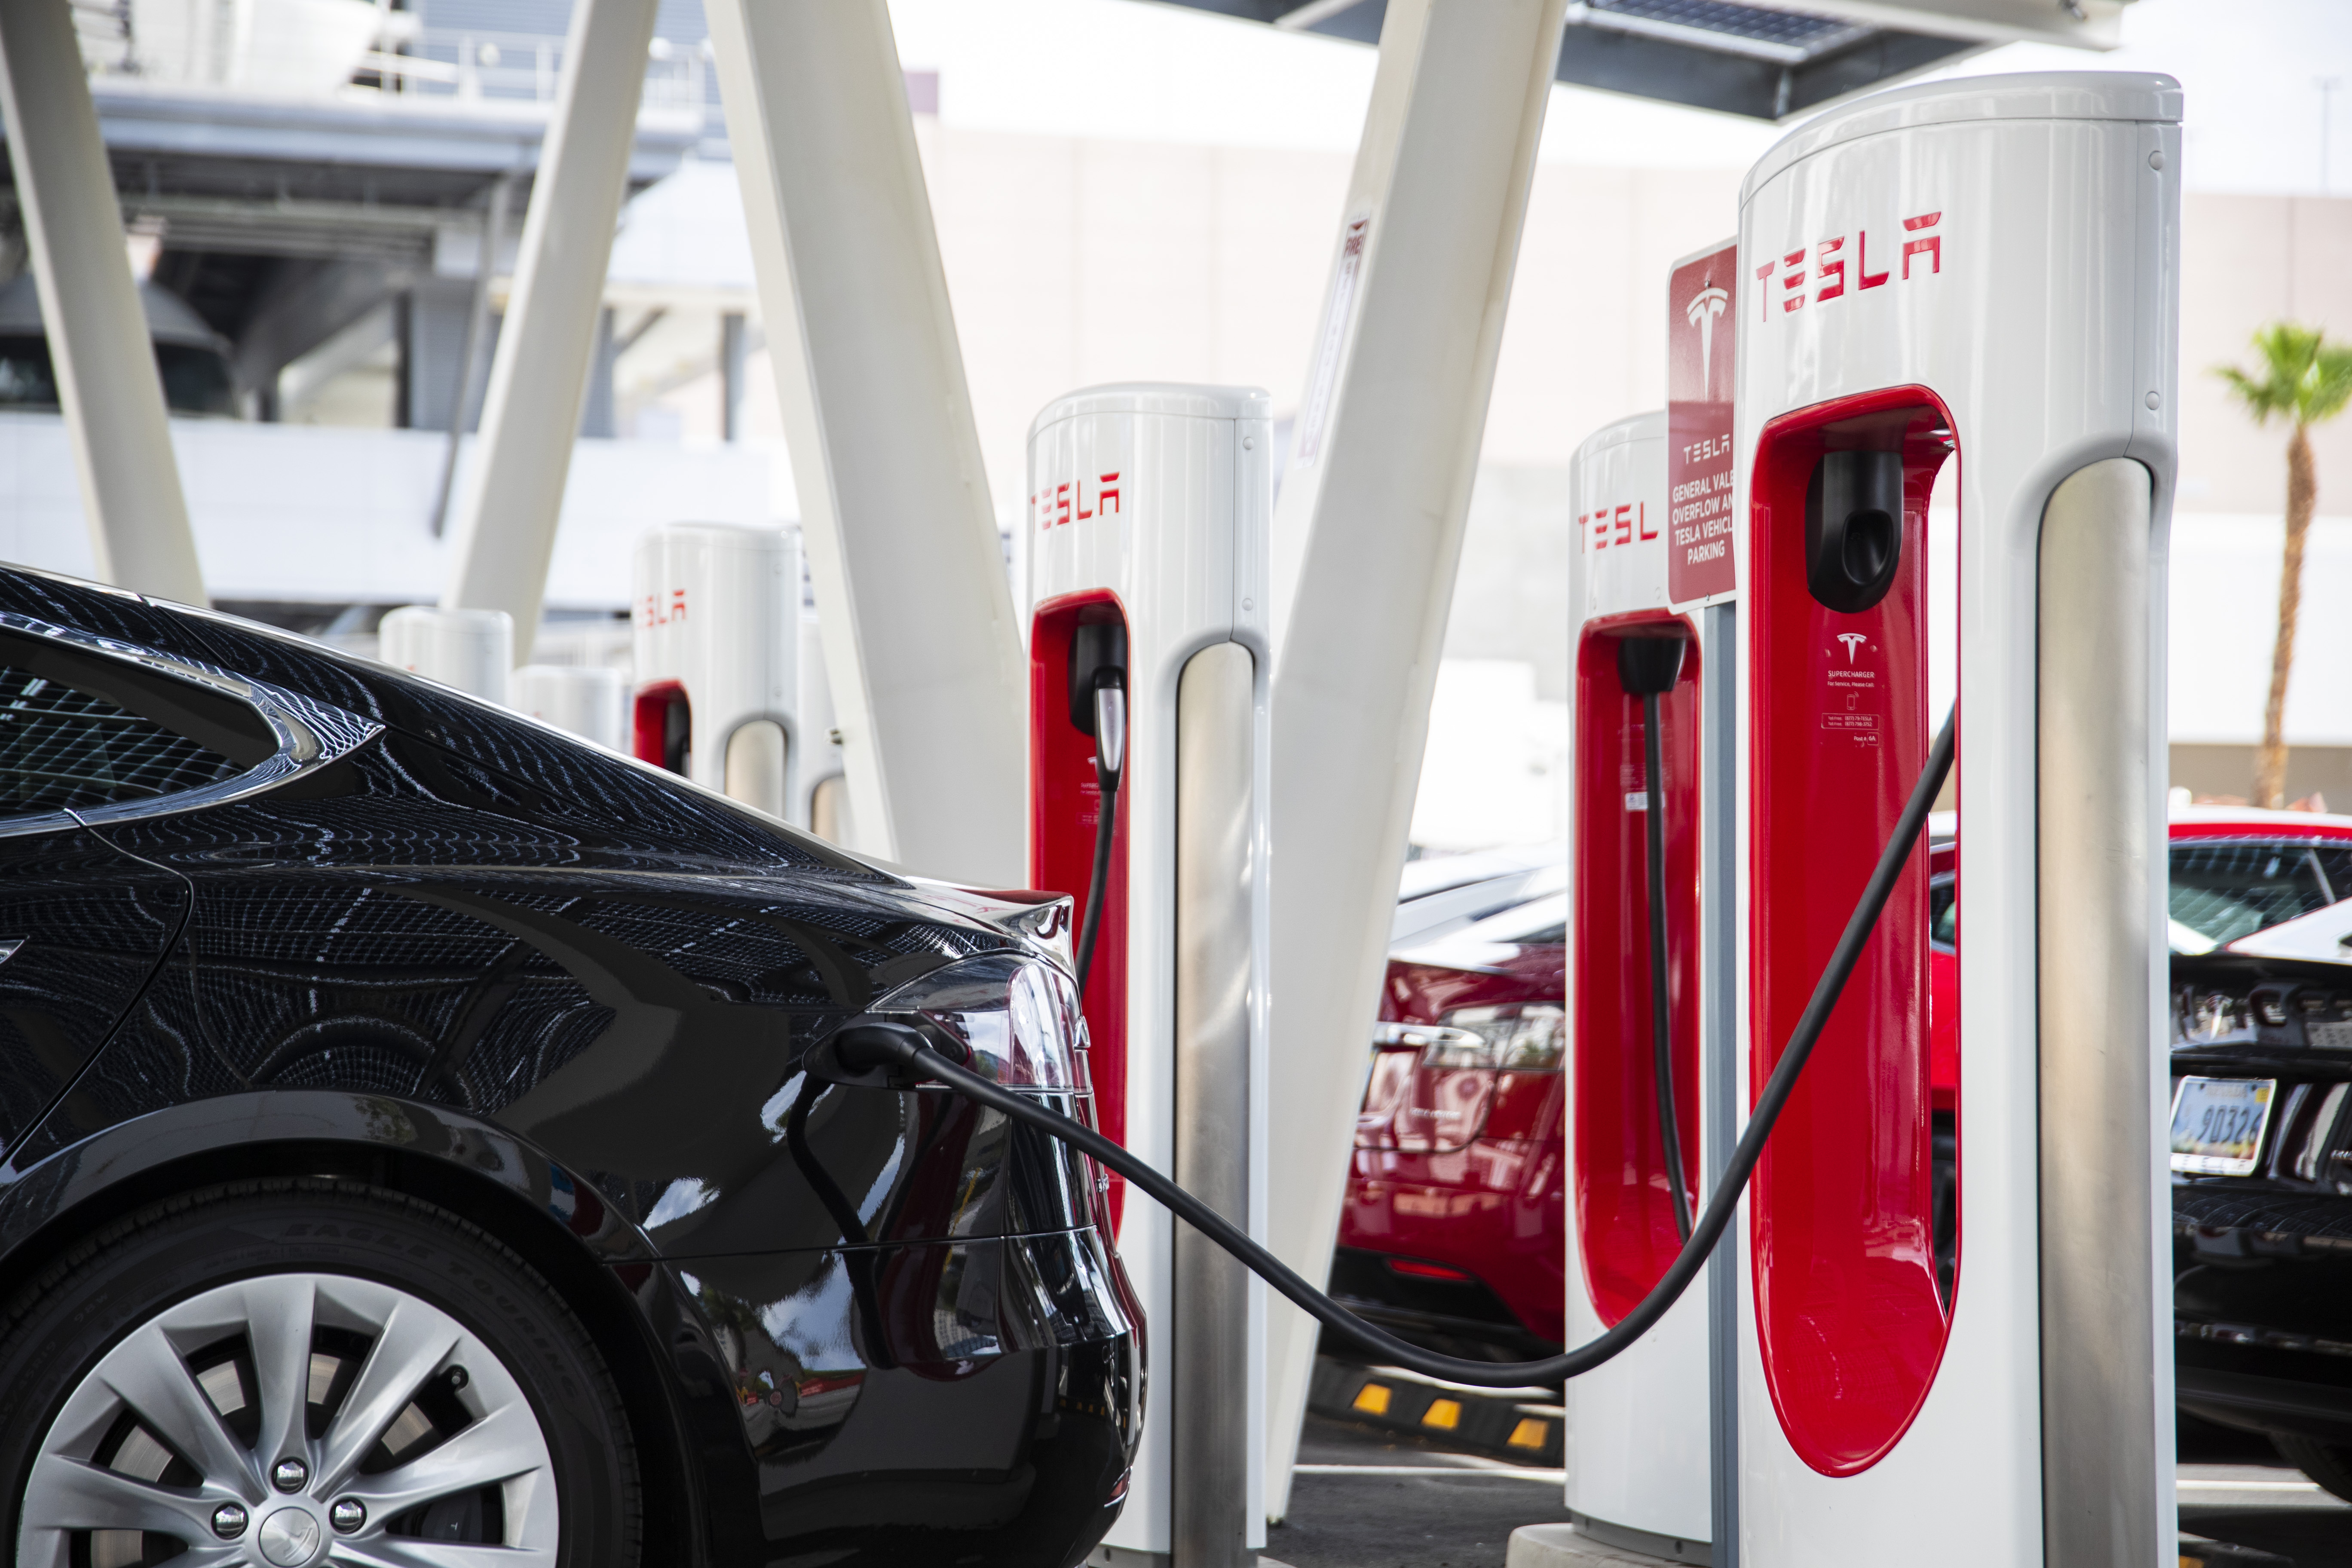 A Tesla vehicle is plugged in at a Tesla Supercharger station in Las Vegas.